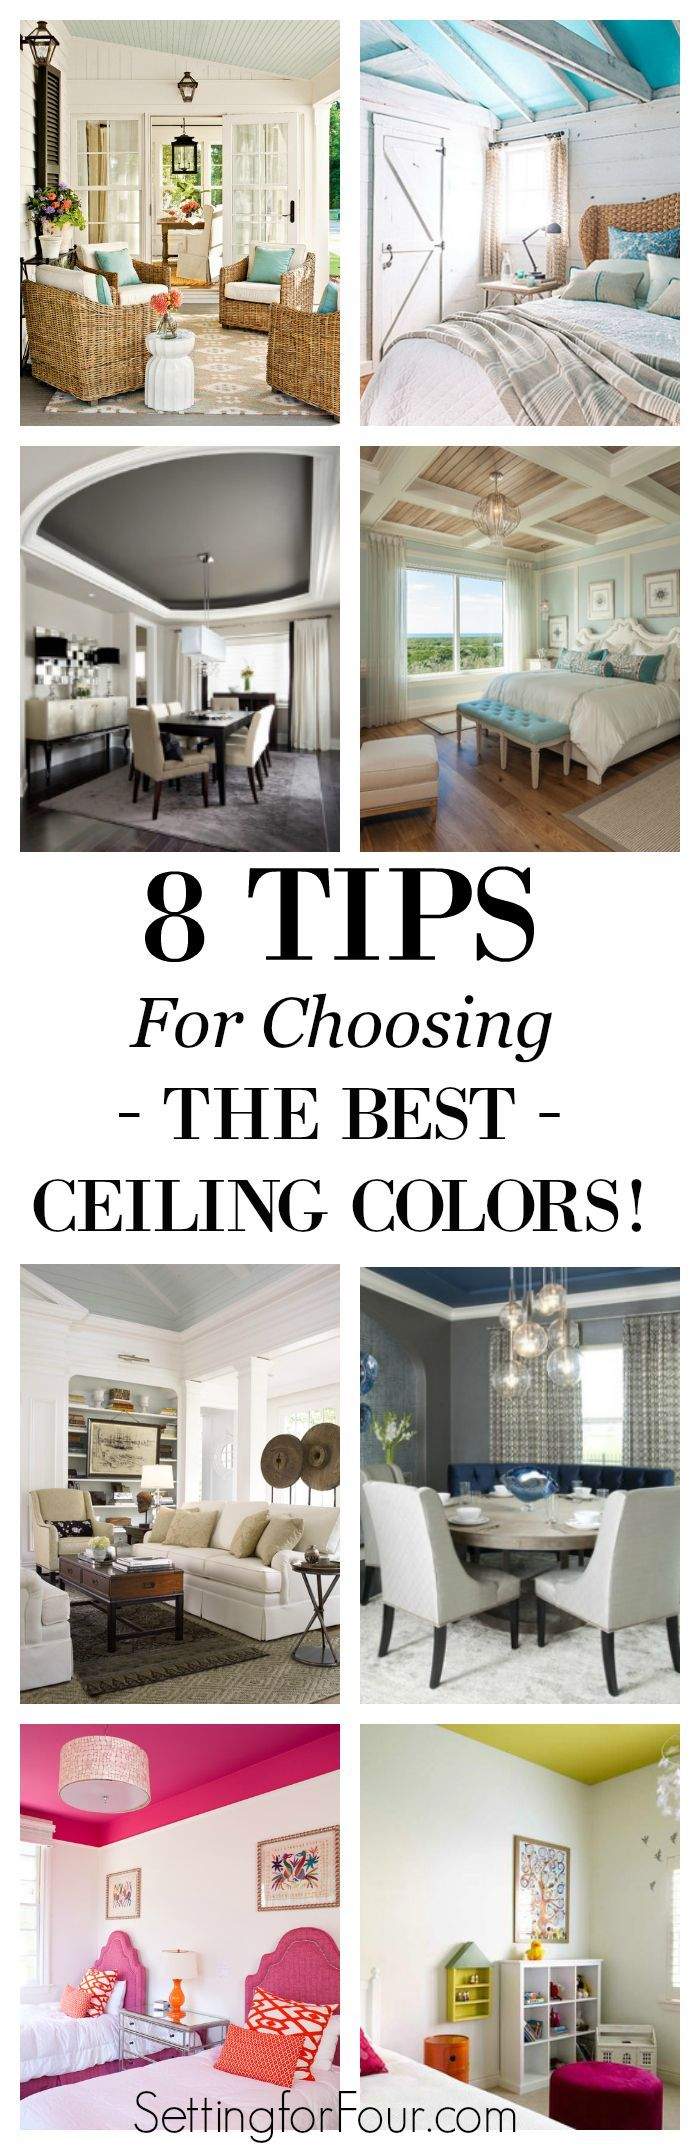 How to paint a vintage buffet home stories a to z - 8 Tips For Choosing Beautiful Ceiling Colors